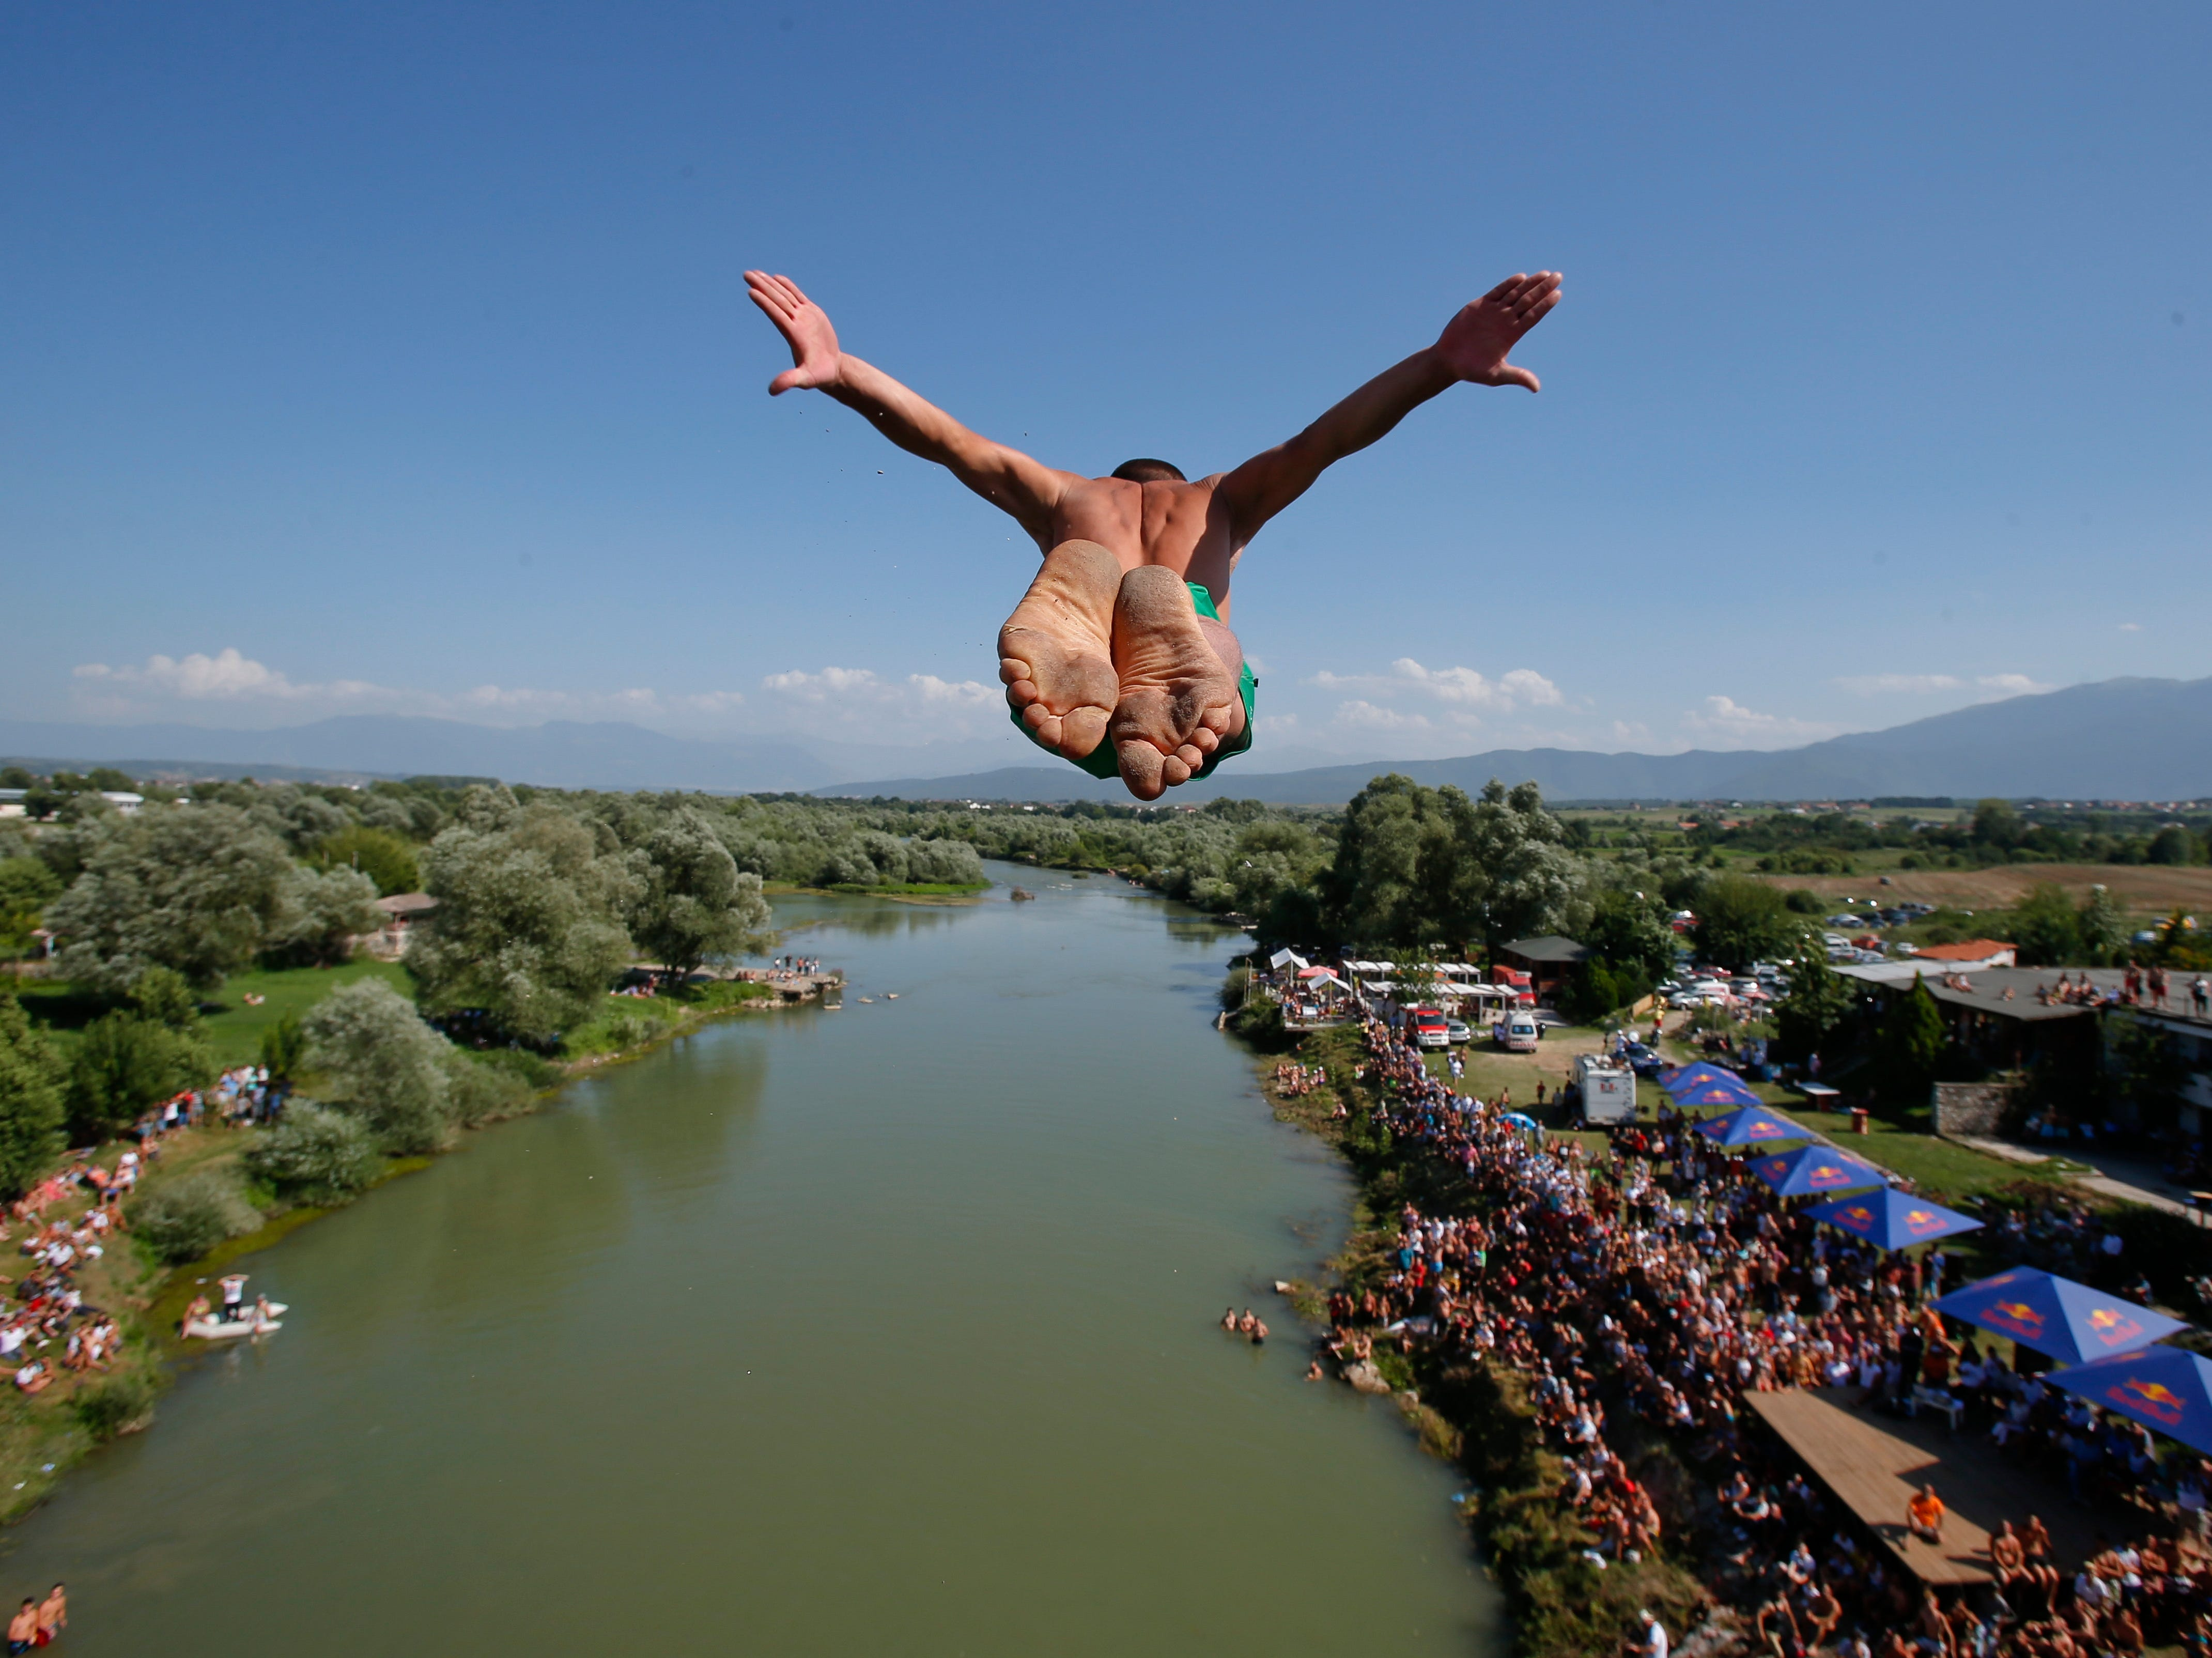 July 22, 2018: Spectators watch from the river banks as a diver launches from the Ura e Shejnt bridge during the 68th traditional annual high diving competition, near the town of Gjakova, Kosovo.